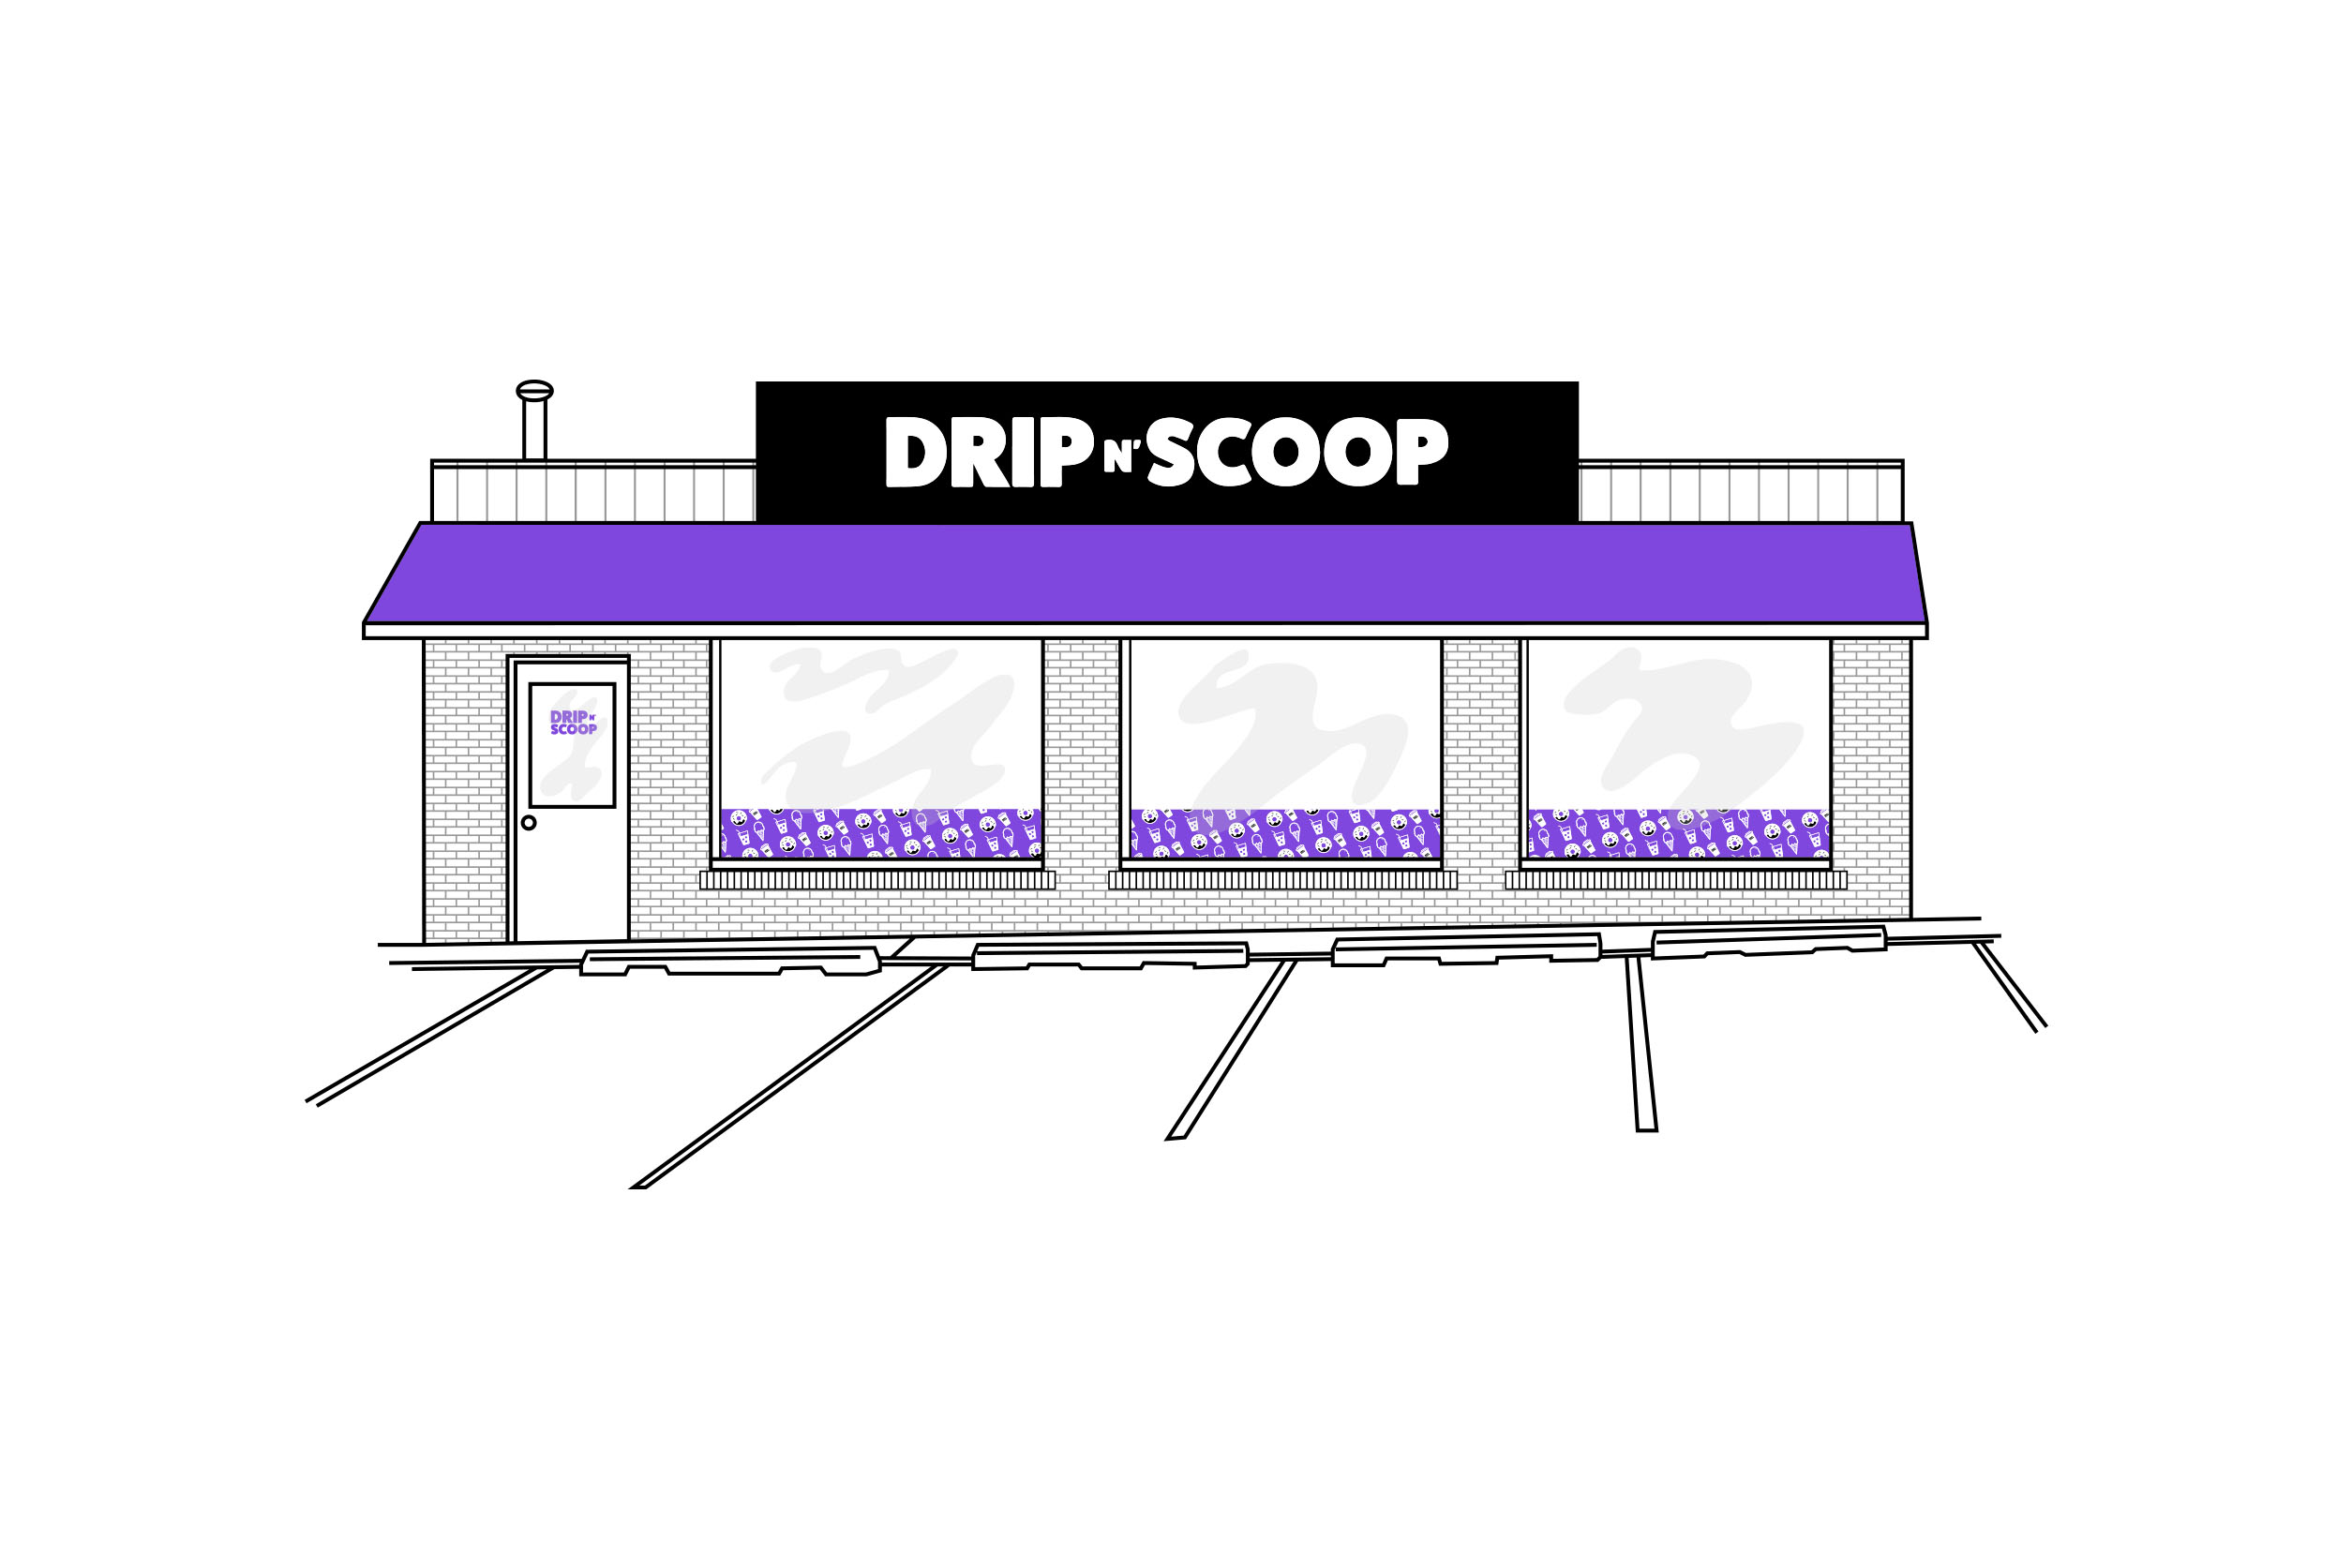 Drip N Scoop - Somers Point NJ